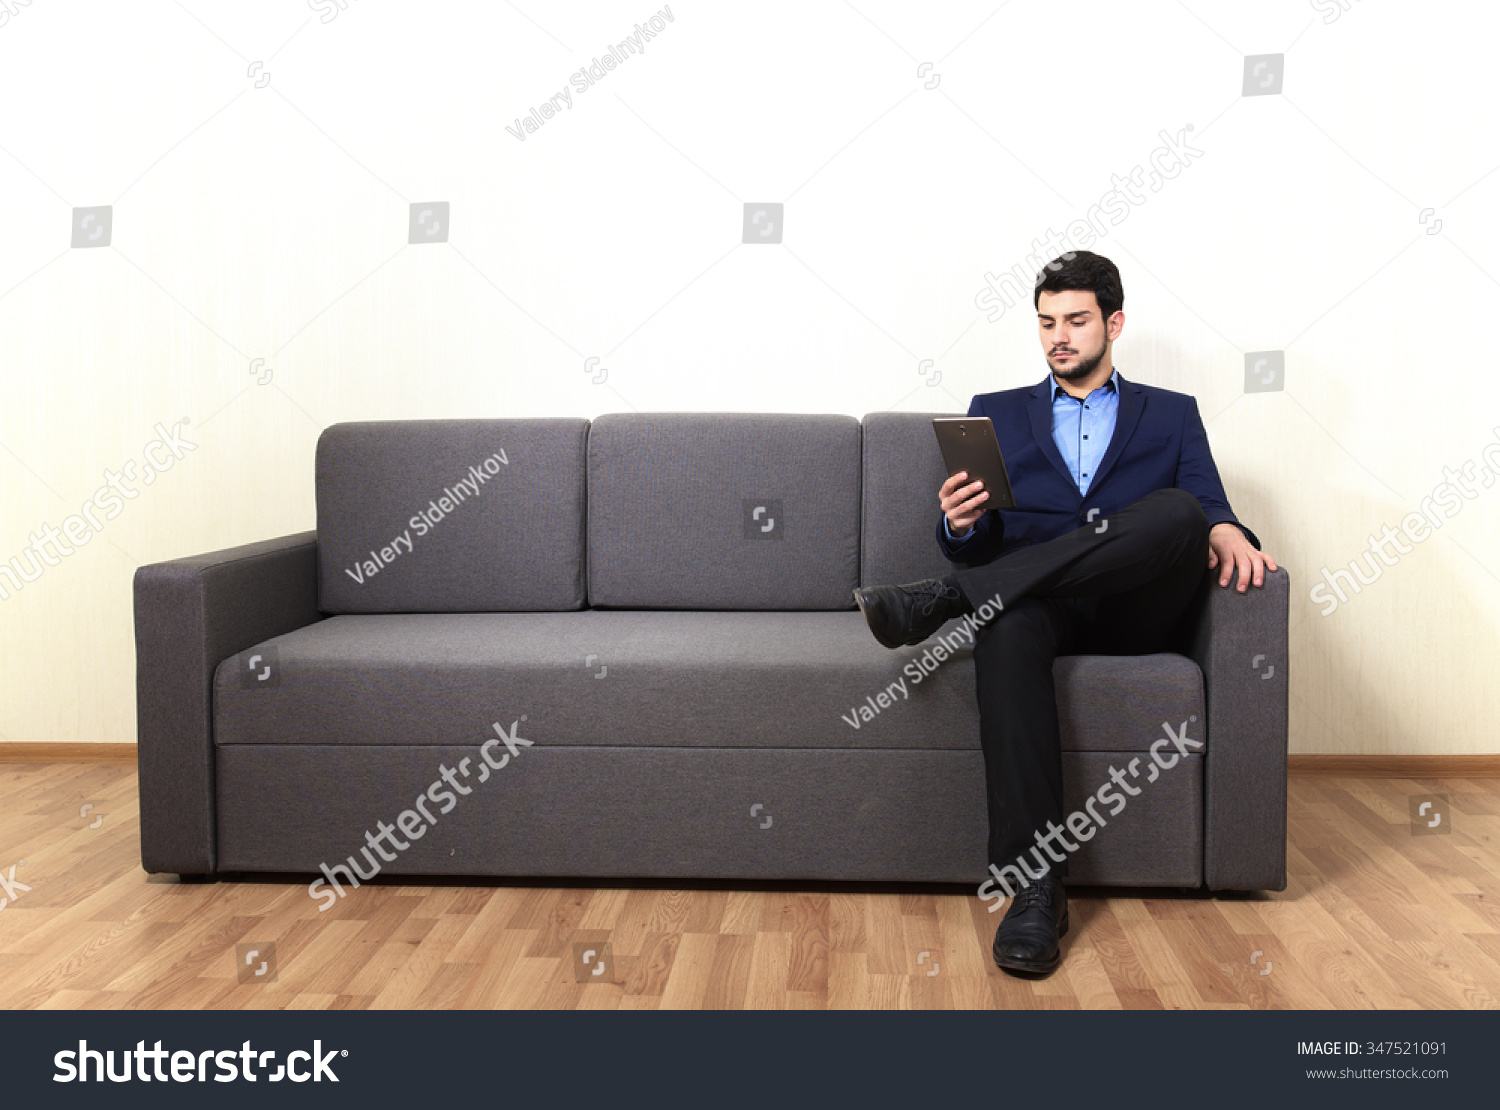 man with tablet pc sitting on the sofa stock photo 347521091 shutterstock. Black Bedroom Furniture Sets. Home Design Ideas